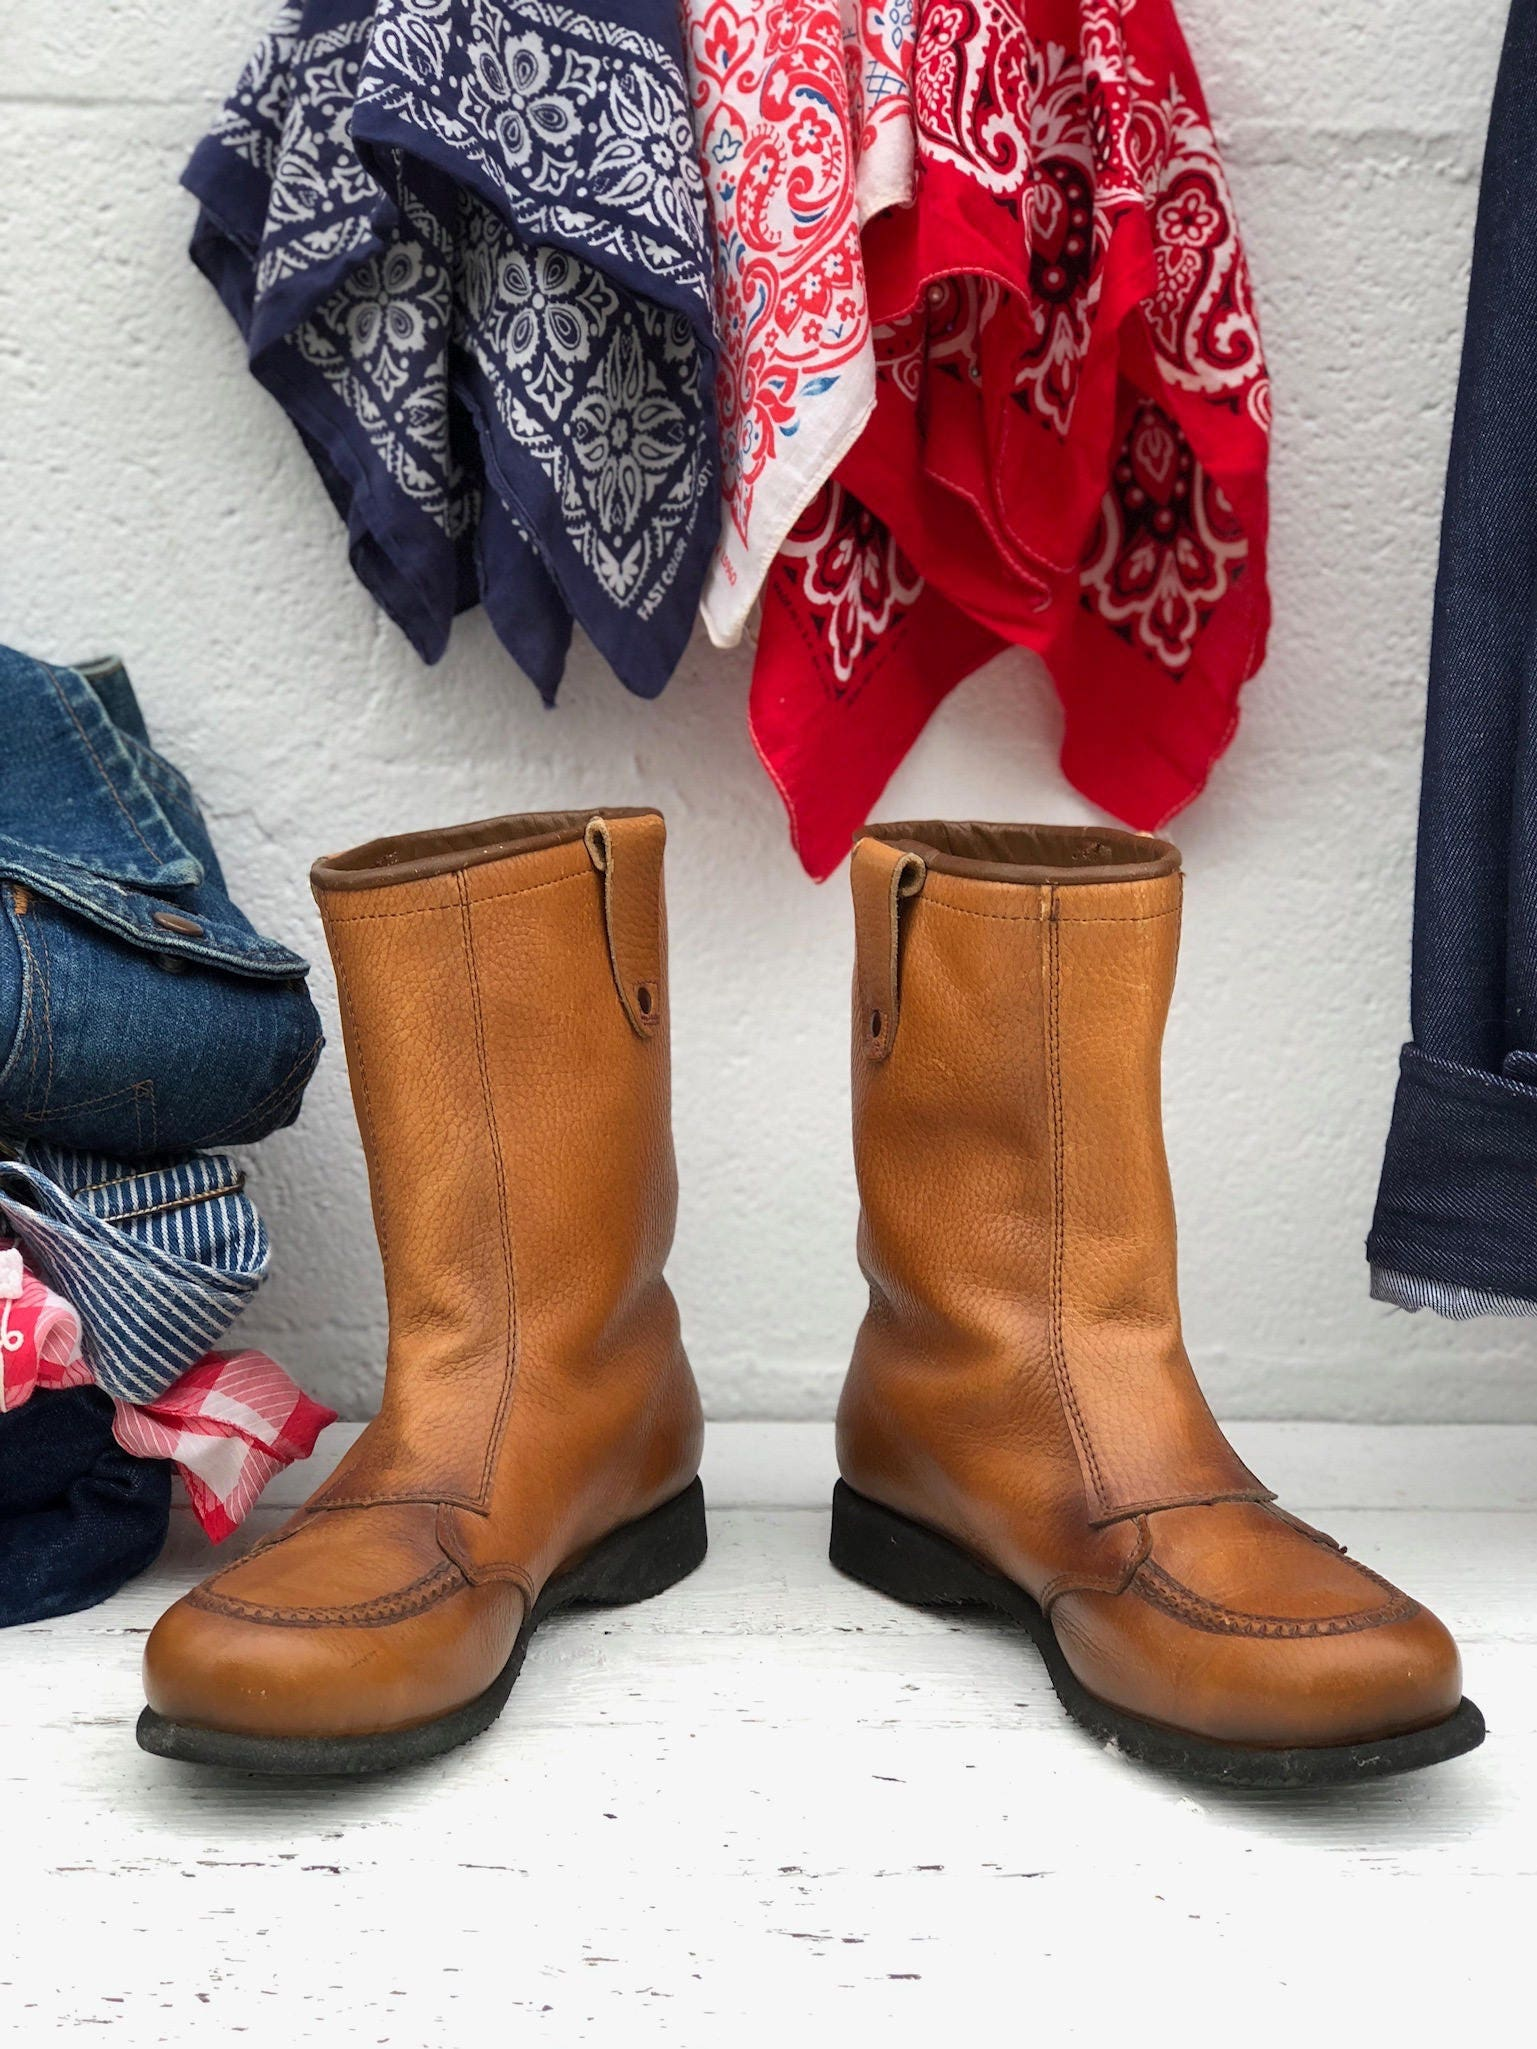 00f57676083 6 C | Women's Red Wing Boots Pull On Winter Moc Toe Work Boots in ...